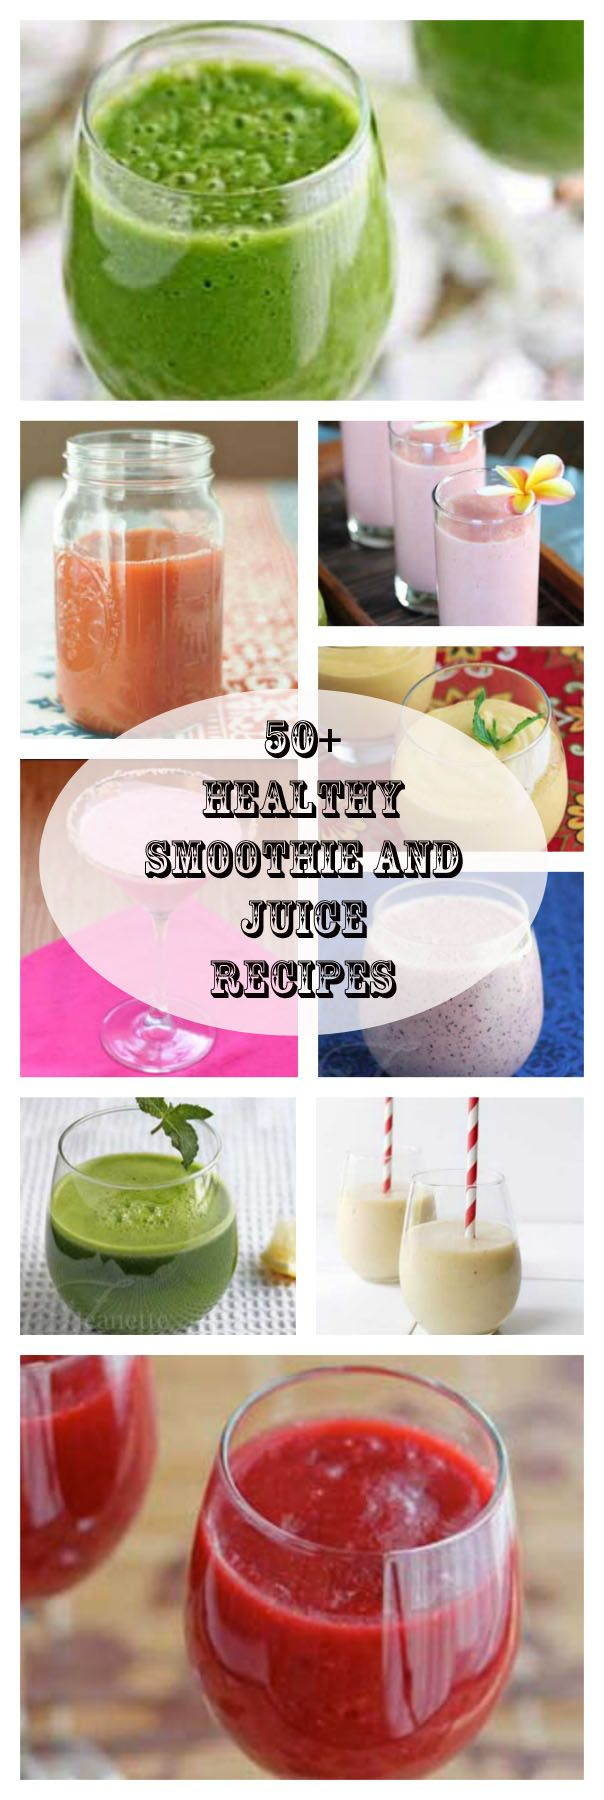 50 Healthy Smoothie and Juice Recipes | Jeanette's Healthy Living